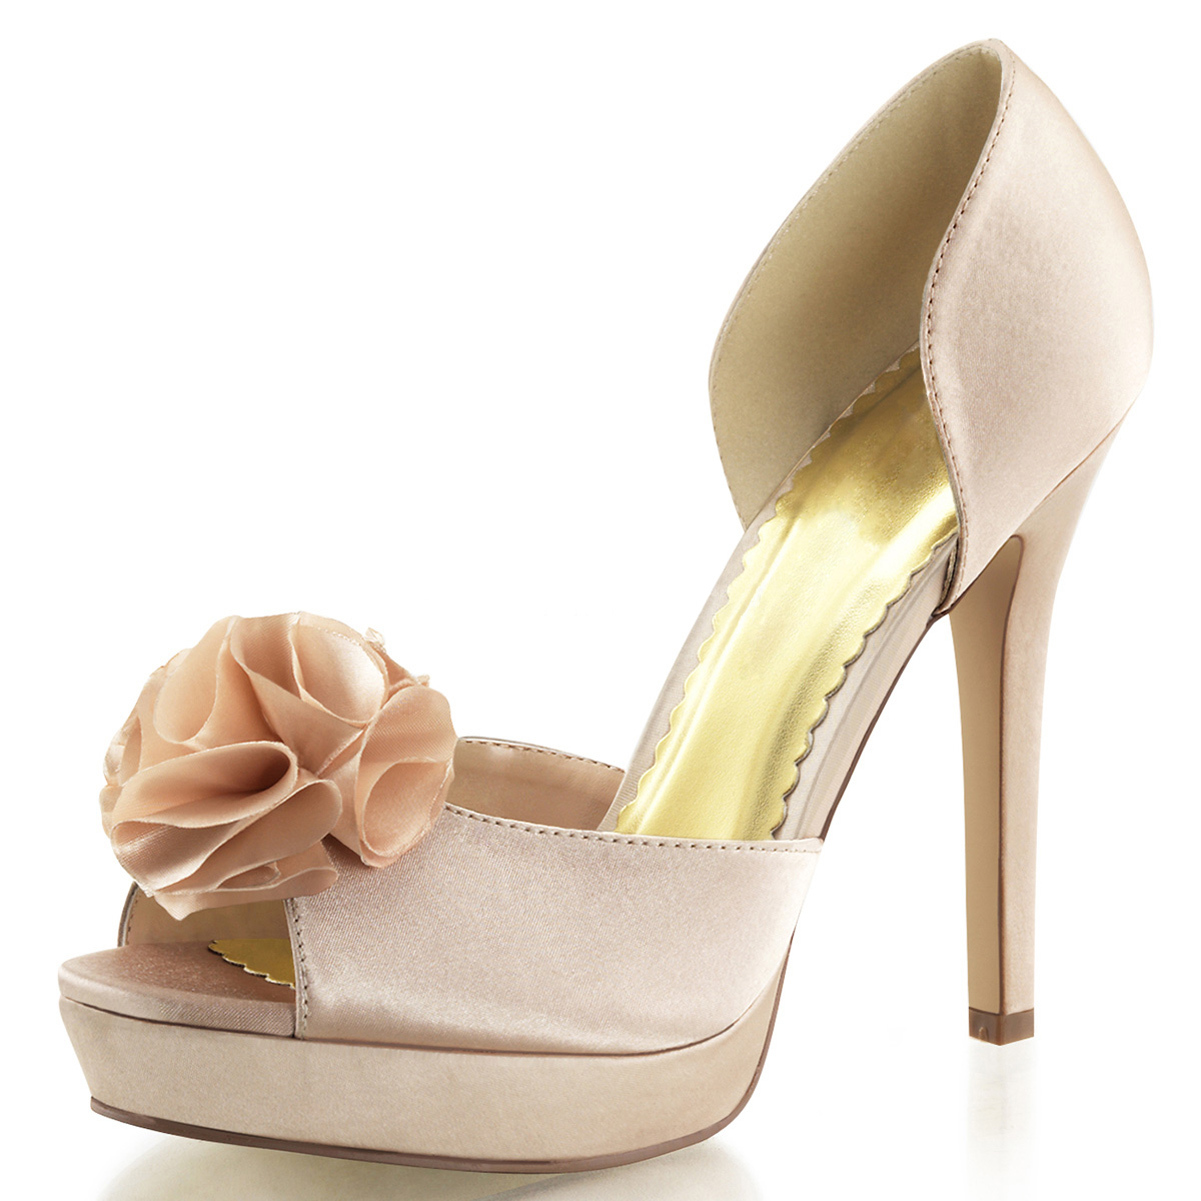 Womens Champagne Wedding Shoes D'Orsay Pumps Peep Toe Shoes 4 3/4 Inch Heels